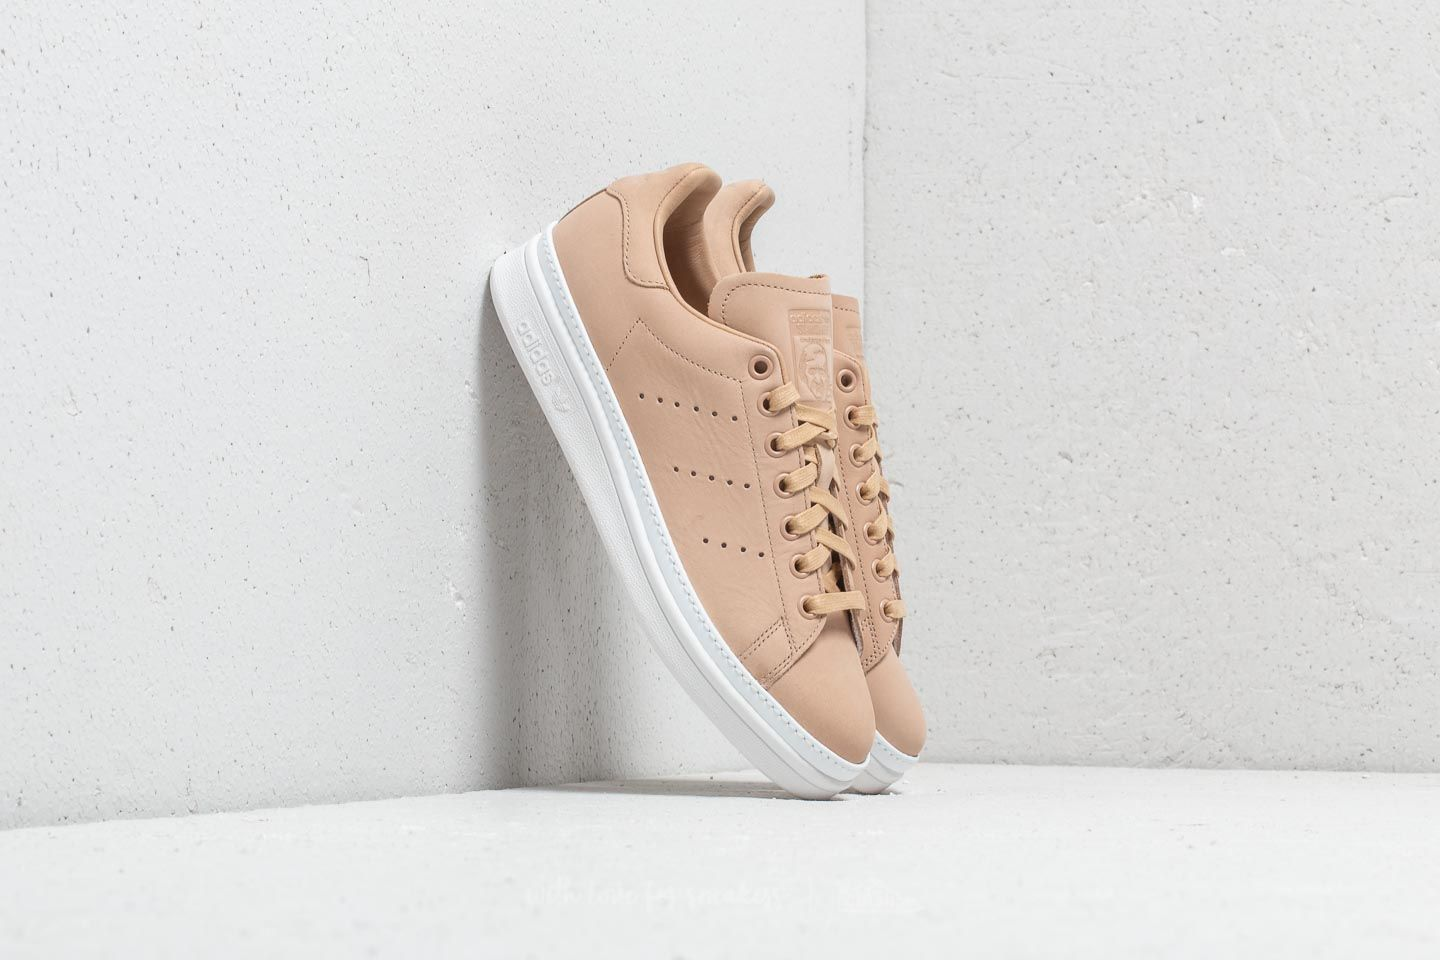 d2b1f1e1772174 adidas Stan Smith New Bold W St Pale Nude  St Pale Nude  Ftw White